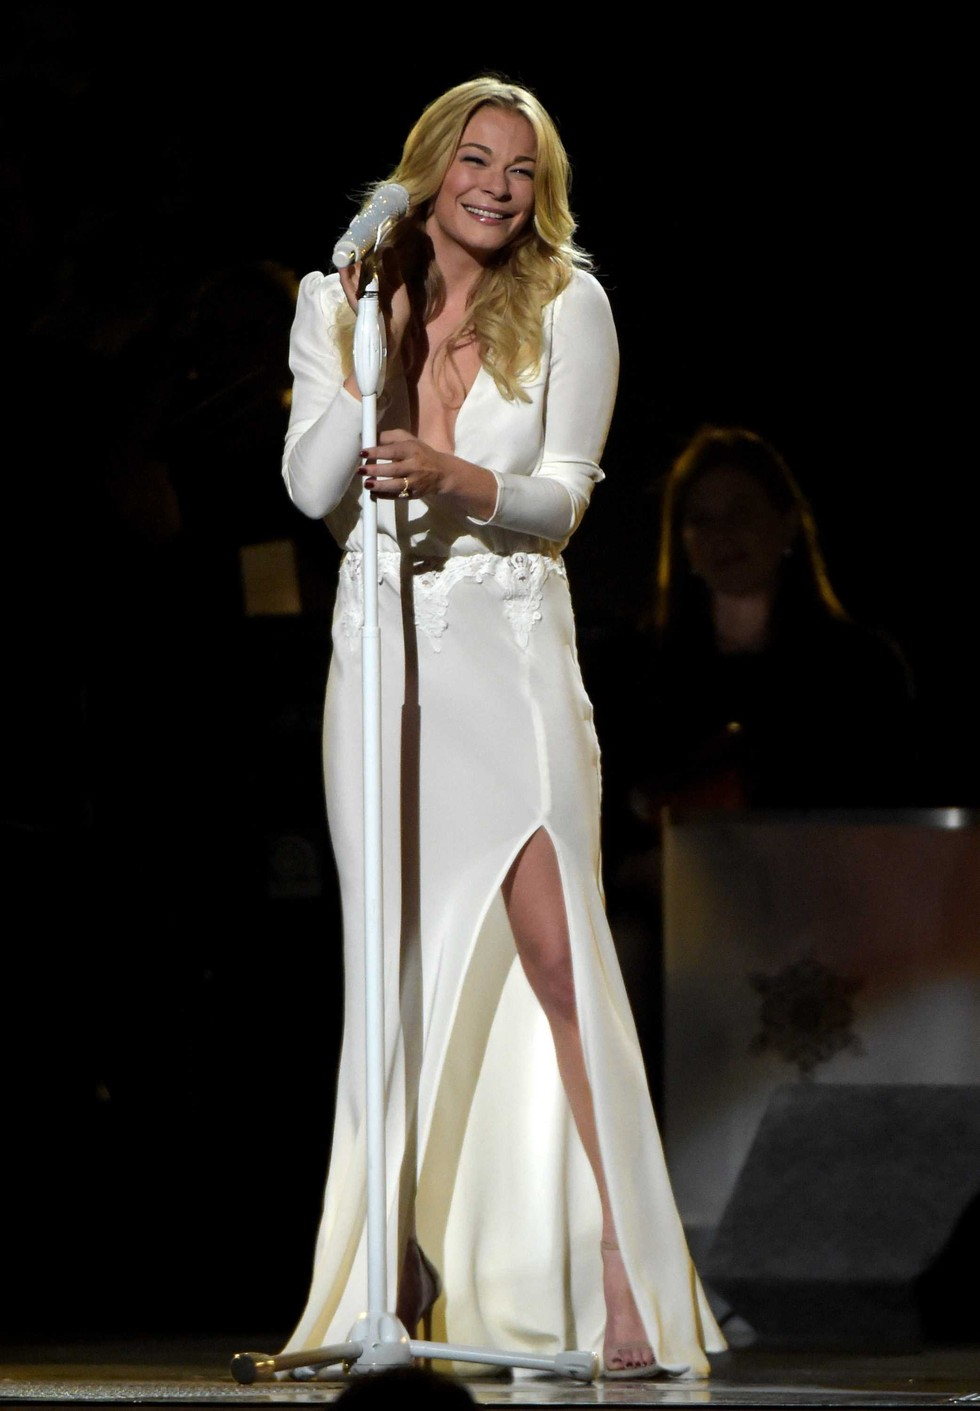 Leann Rimes Rips Into 'Carol Of The Bells' At CMA Country Christmas—Watch Now! - Popdust